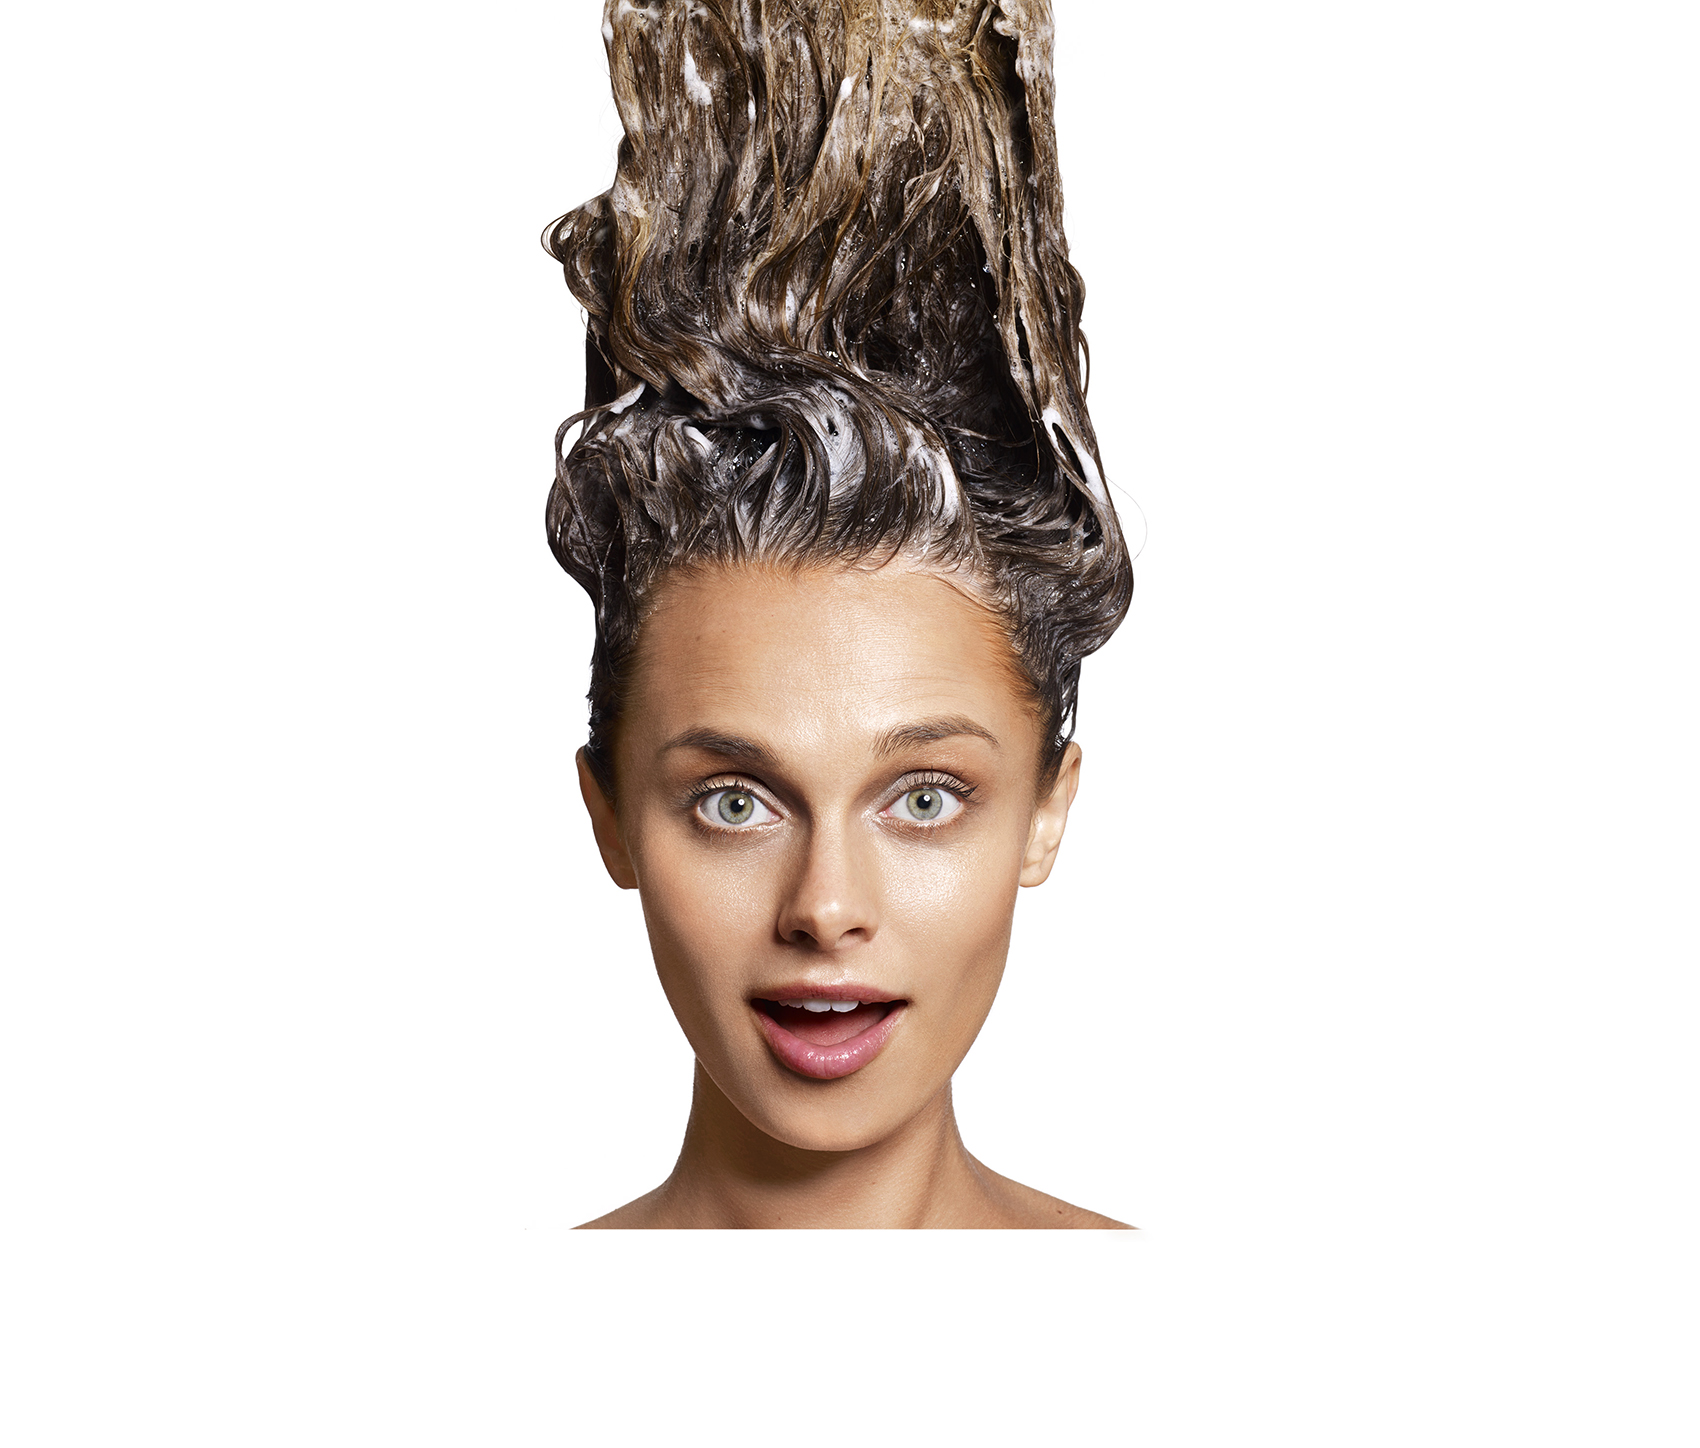 How often should females wash their hair